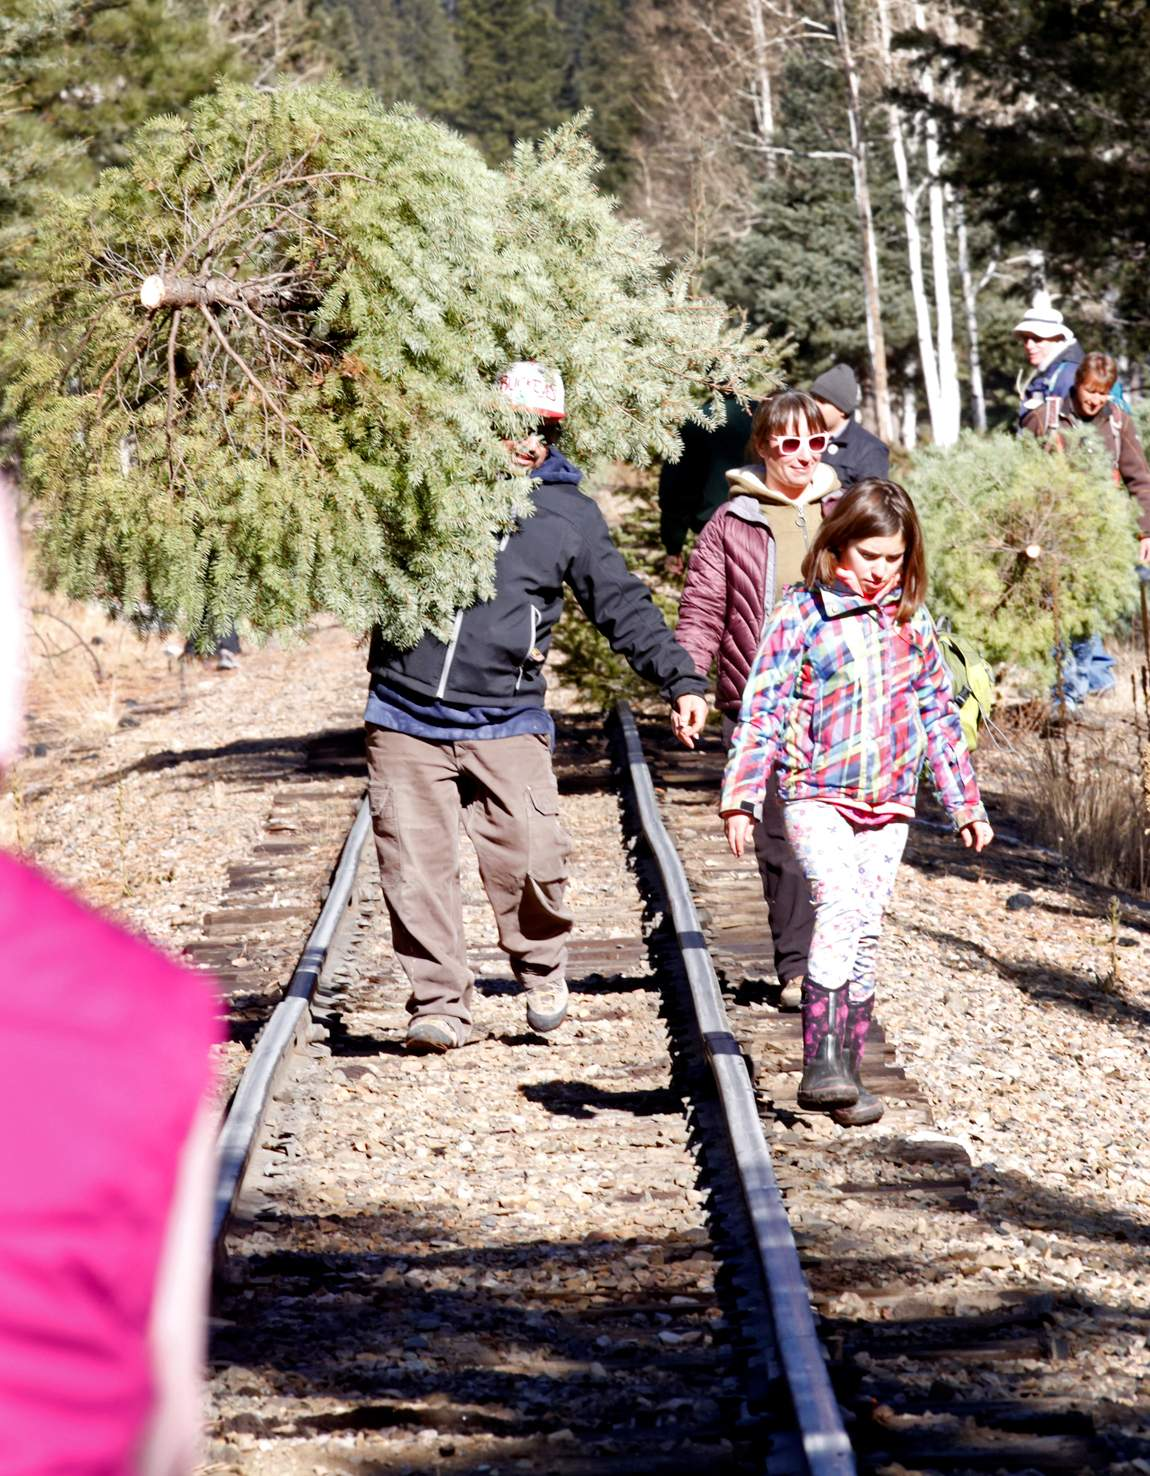 Christmas tree permits on sale in Southwest Colorado